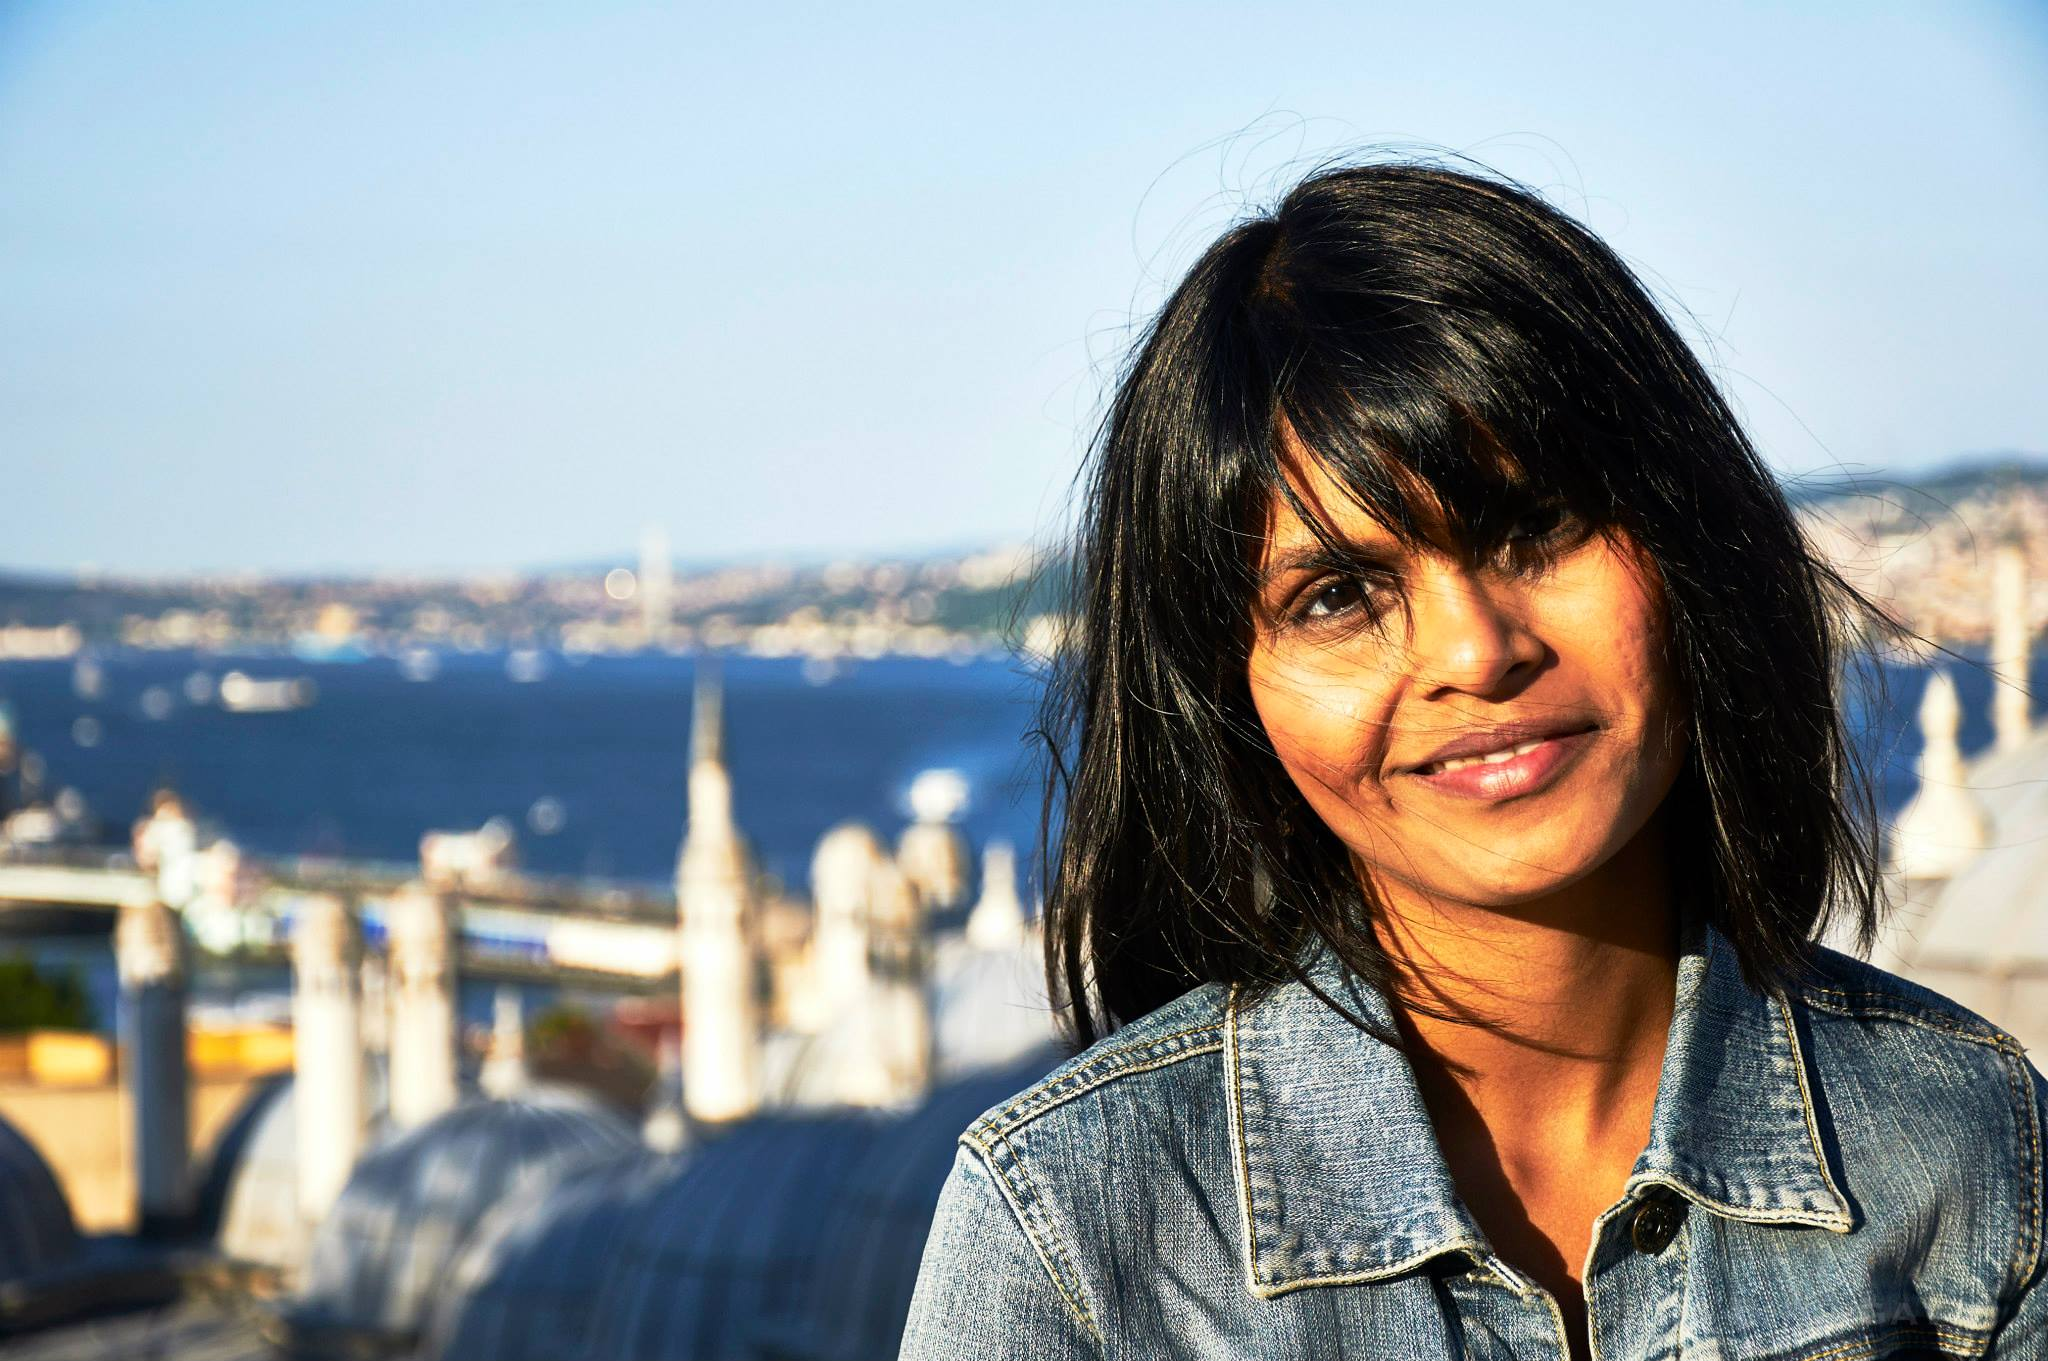 Riddhi Shah, Medium's new branded content lead